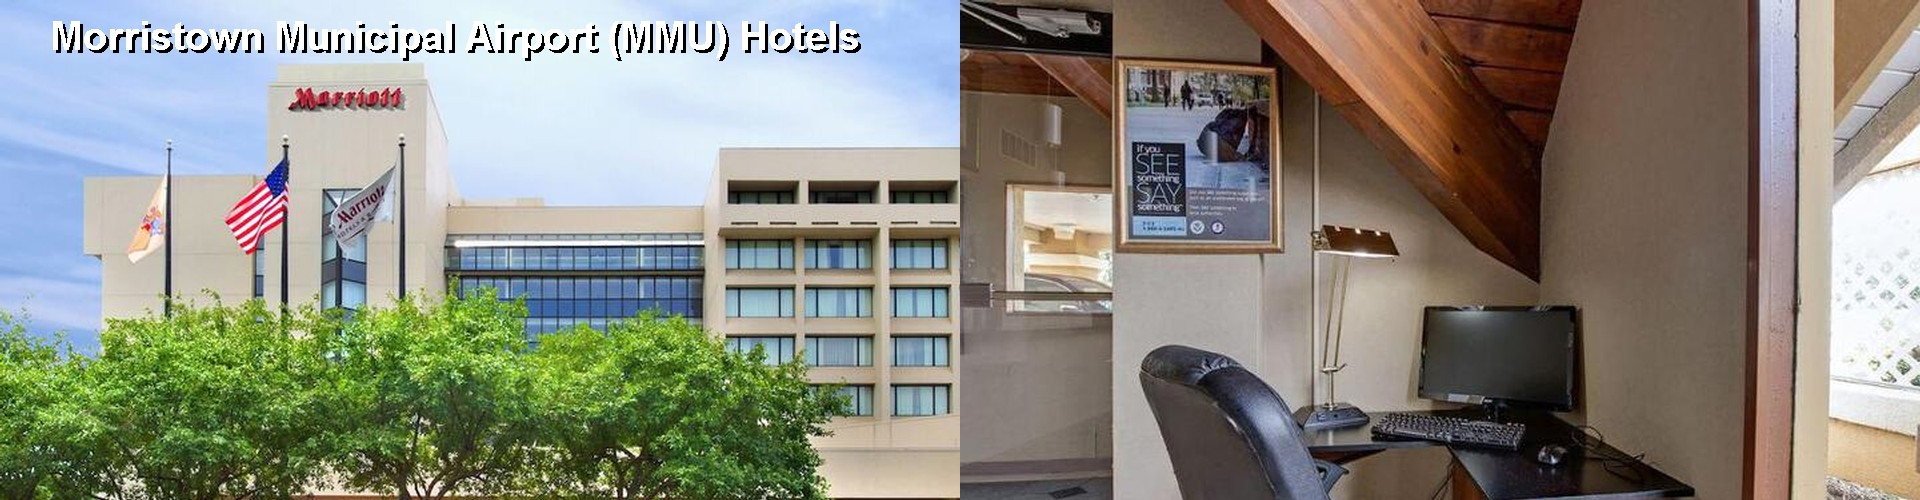 5 Best Hotels Near Morristown Munil Airport Mmu